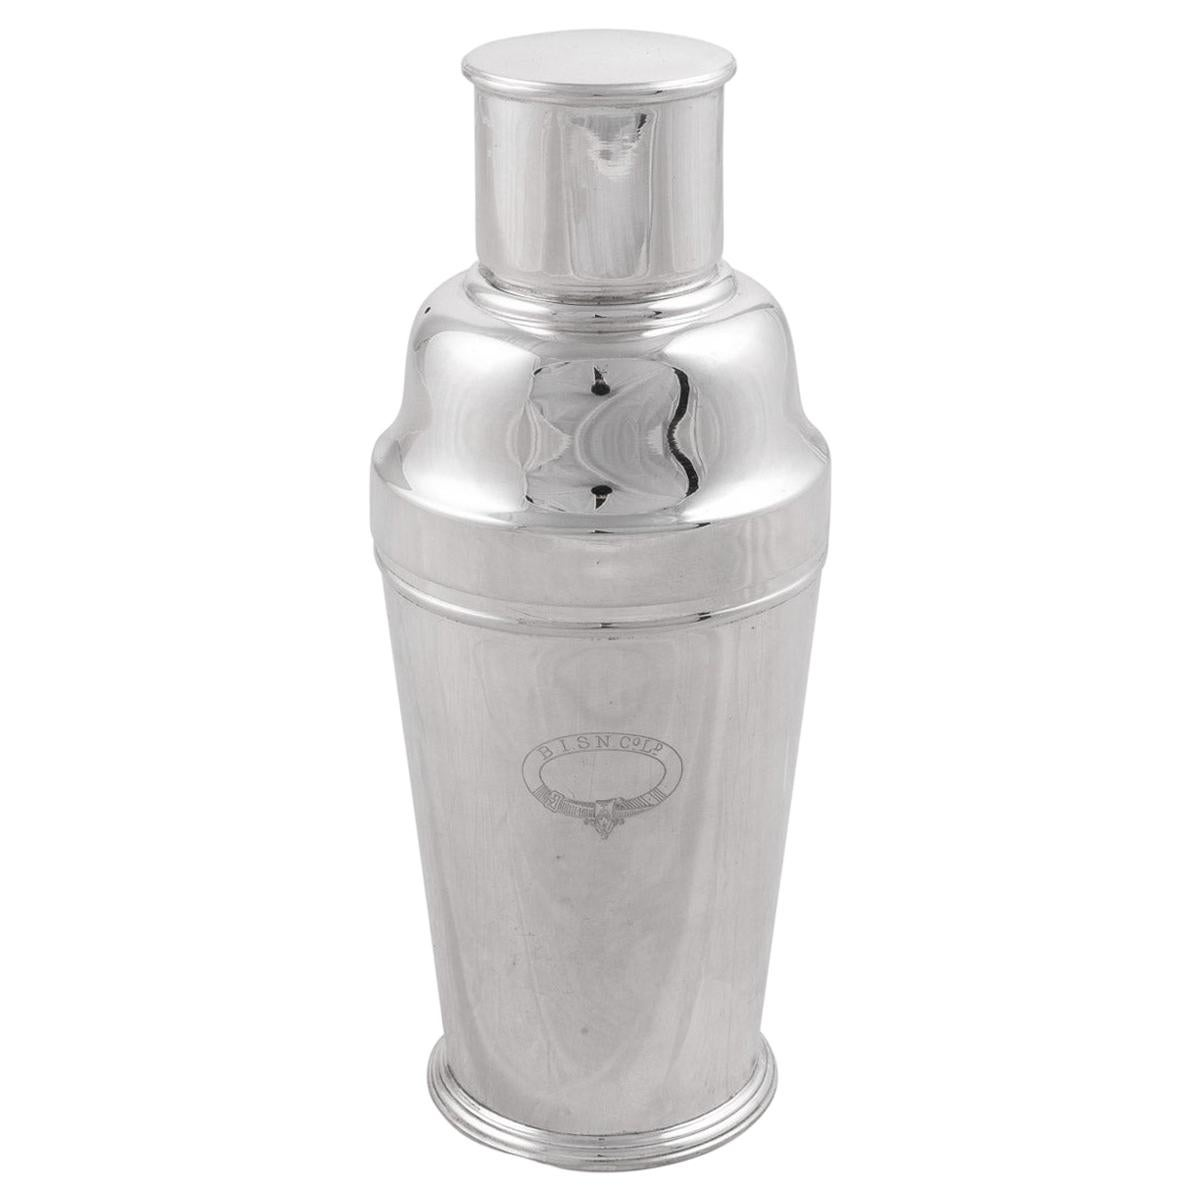 Mid 20th Century Silver Plated Cocktail Shaker, Mappin & Webb, c.1950